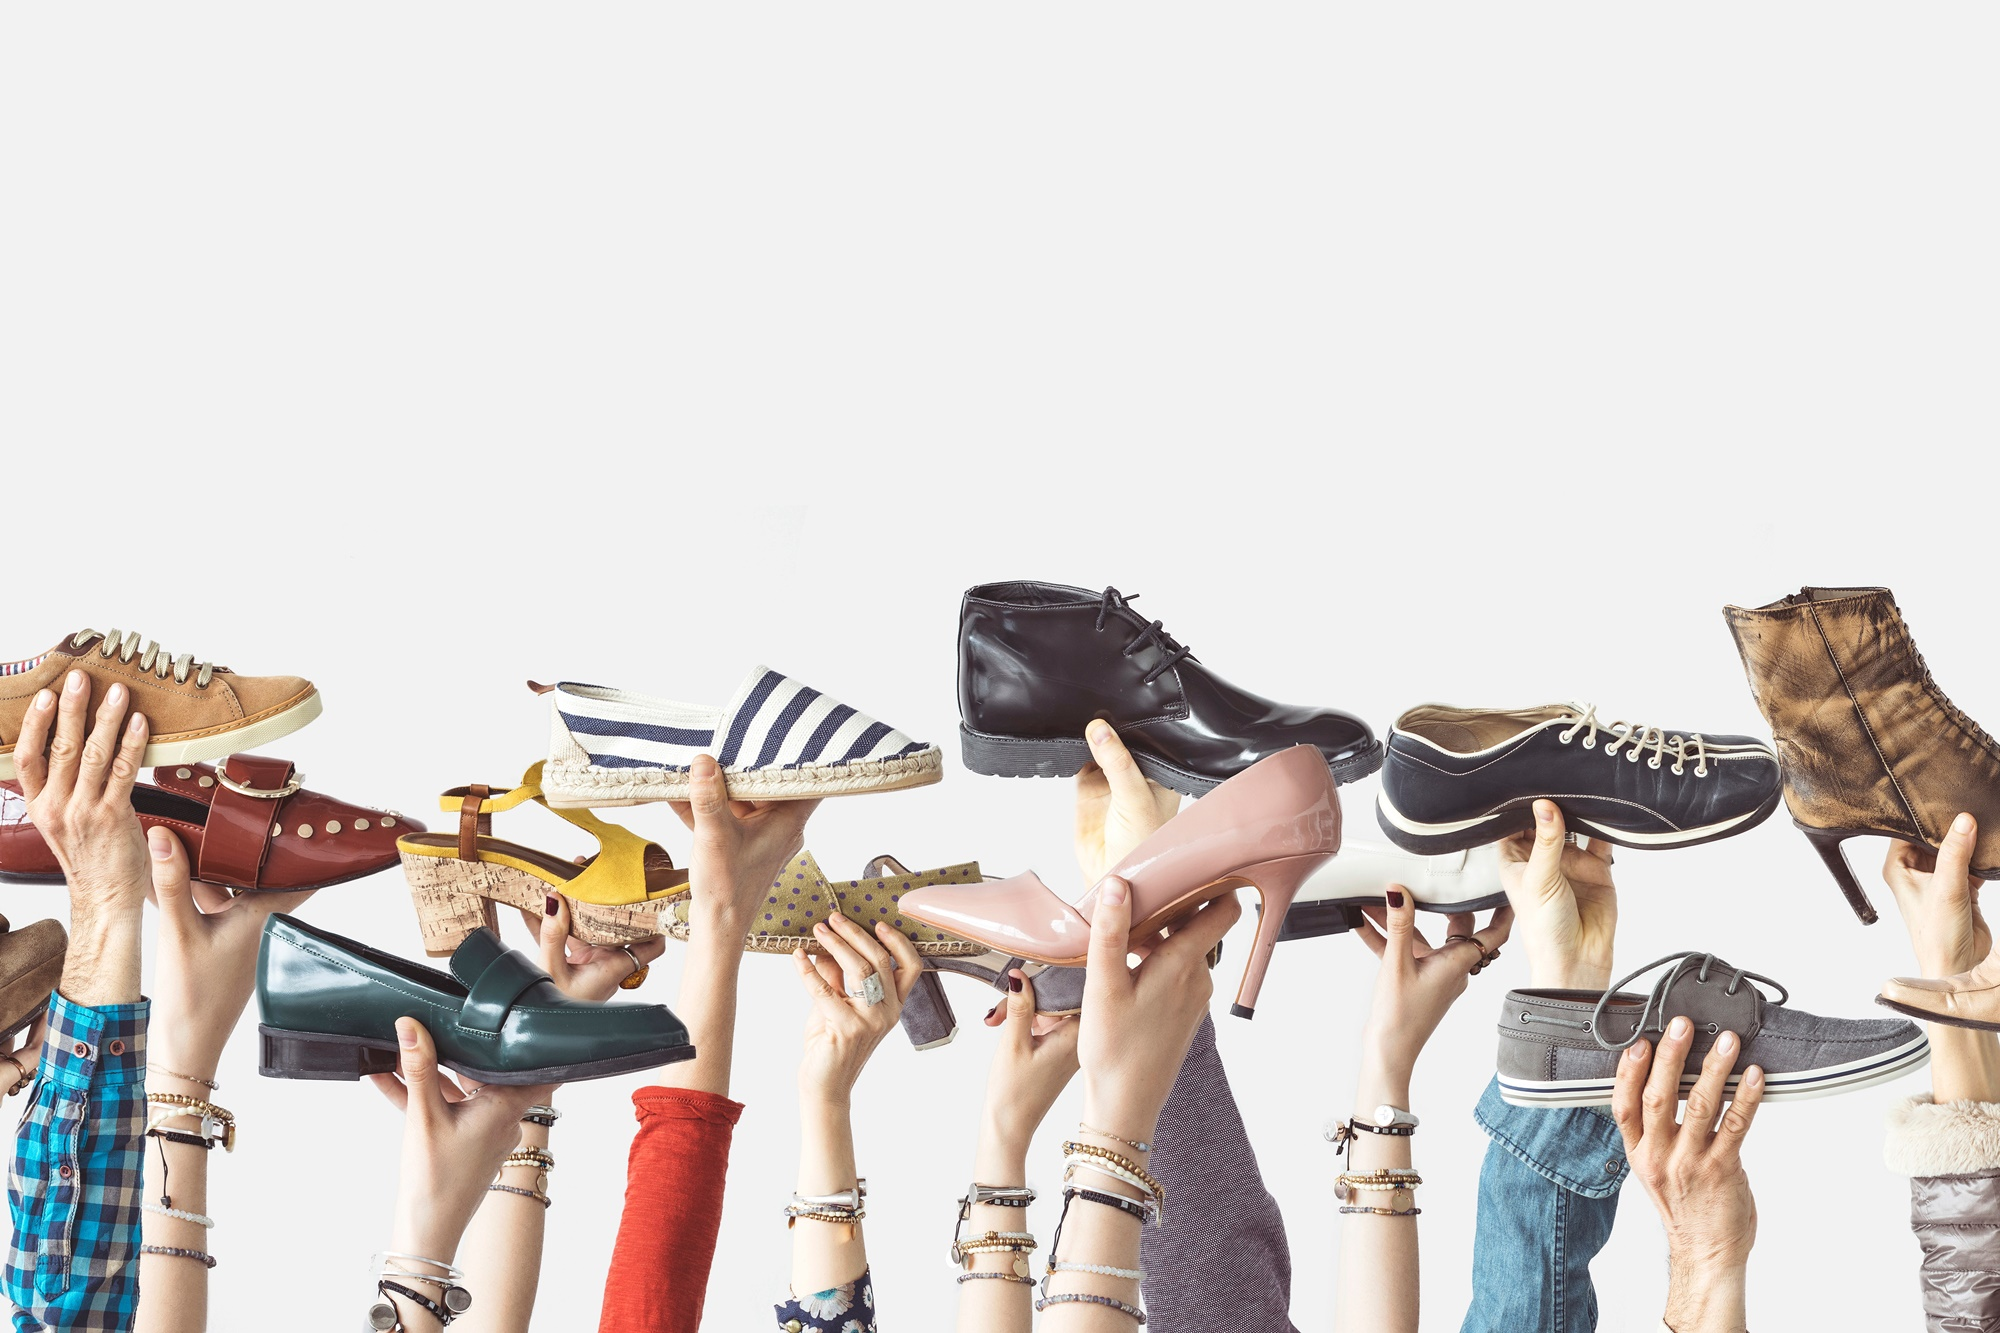 Global Footwear Market Report, Industry Overview, Growth Rate and Forecast 2024